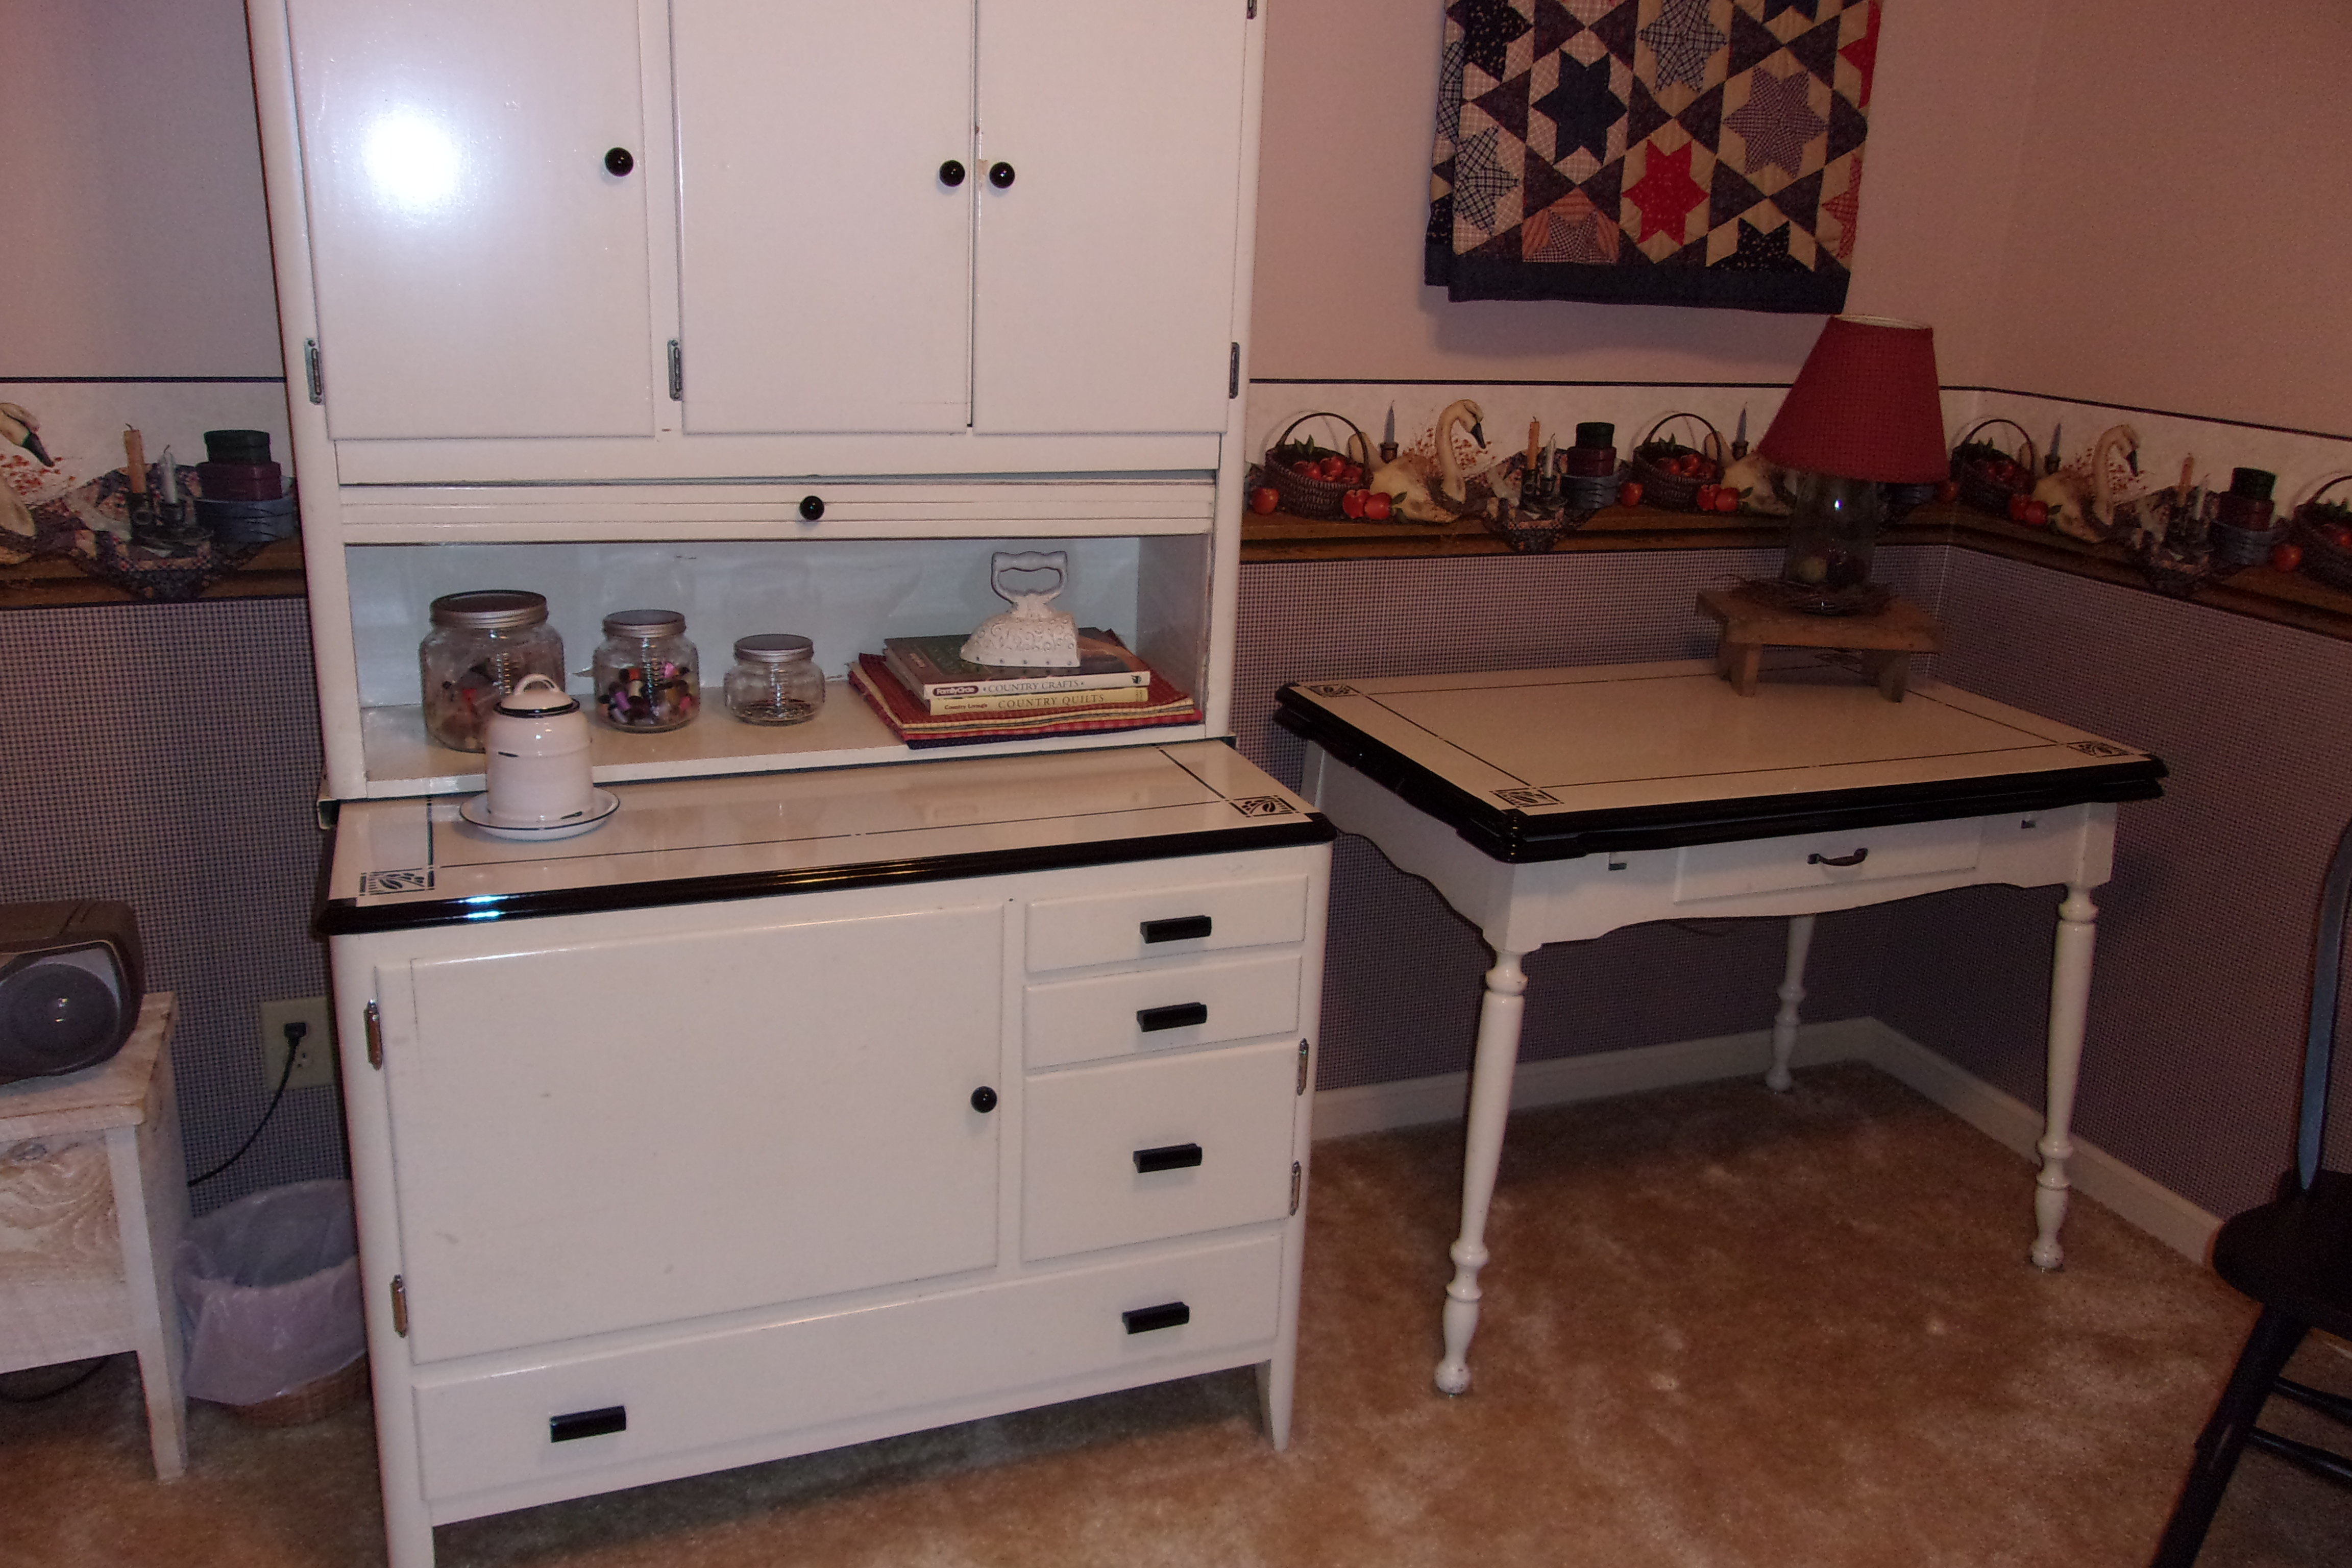 Manufactured By Mutschler Furniture In Nanee My Mother Was A Housekeeper For Mr And He Gave Her The Hoosier Cabinet As Wedding Gift